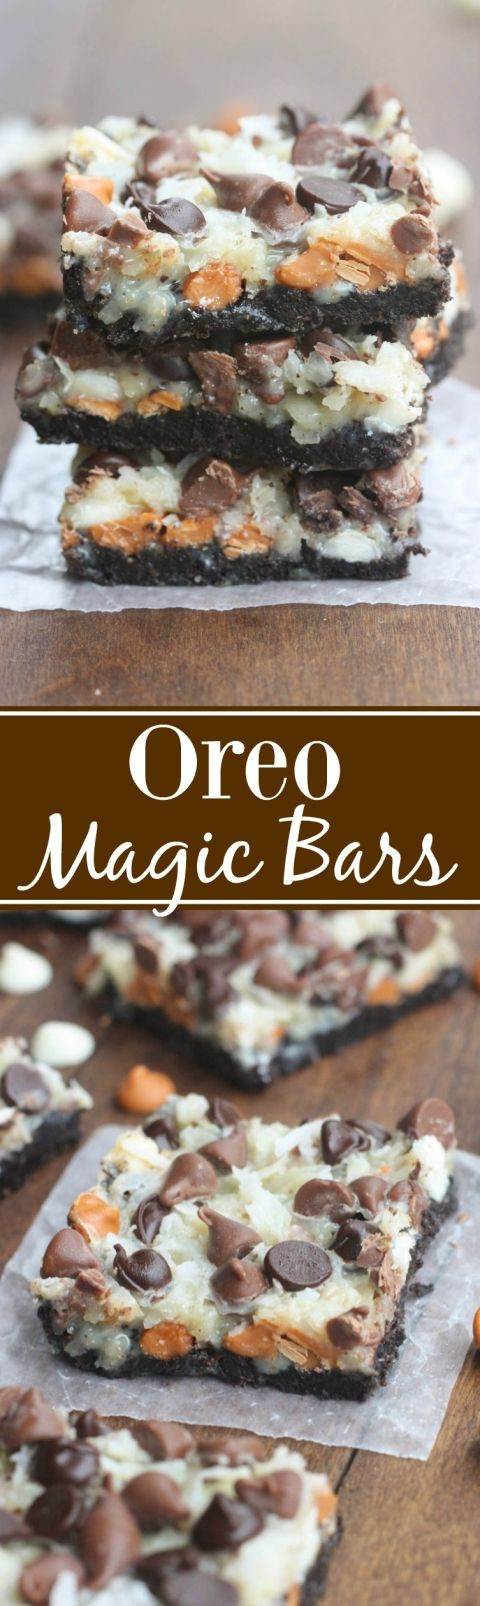 Oreo Magic Cookie Bars Recipe via Tastes Better From Scratch - The BEST Christmas Cookies, Fudge, Candy, Barks and Brittles Recipes - Favorites for Holiday Treats Gift Plates and Goodies Bags! #chrstmascookies #christmascandy #christmastreats #holidaydesserts #holidayrecipes #christmascandies #holidaygiftplates